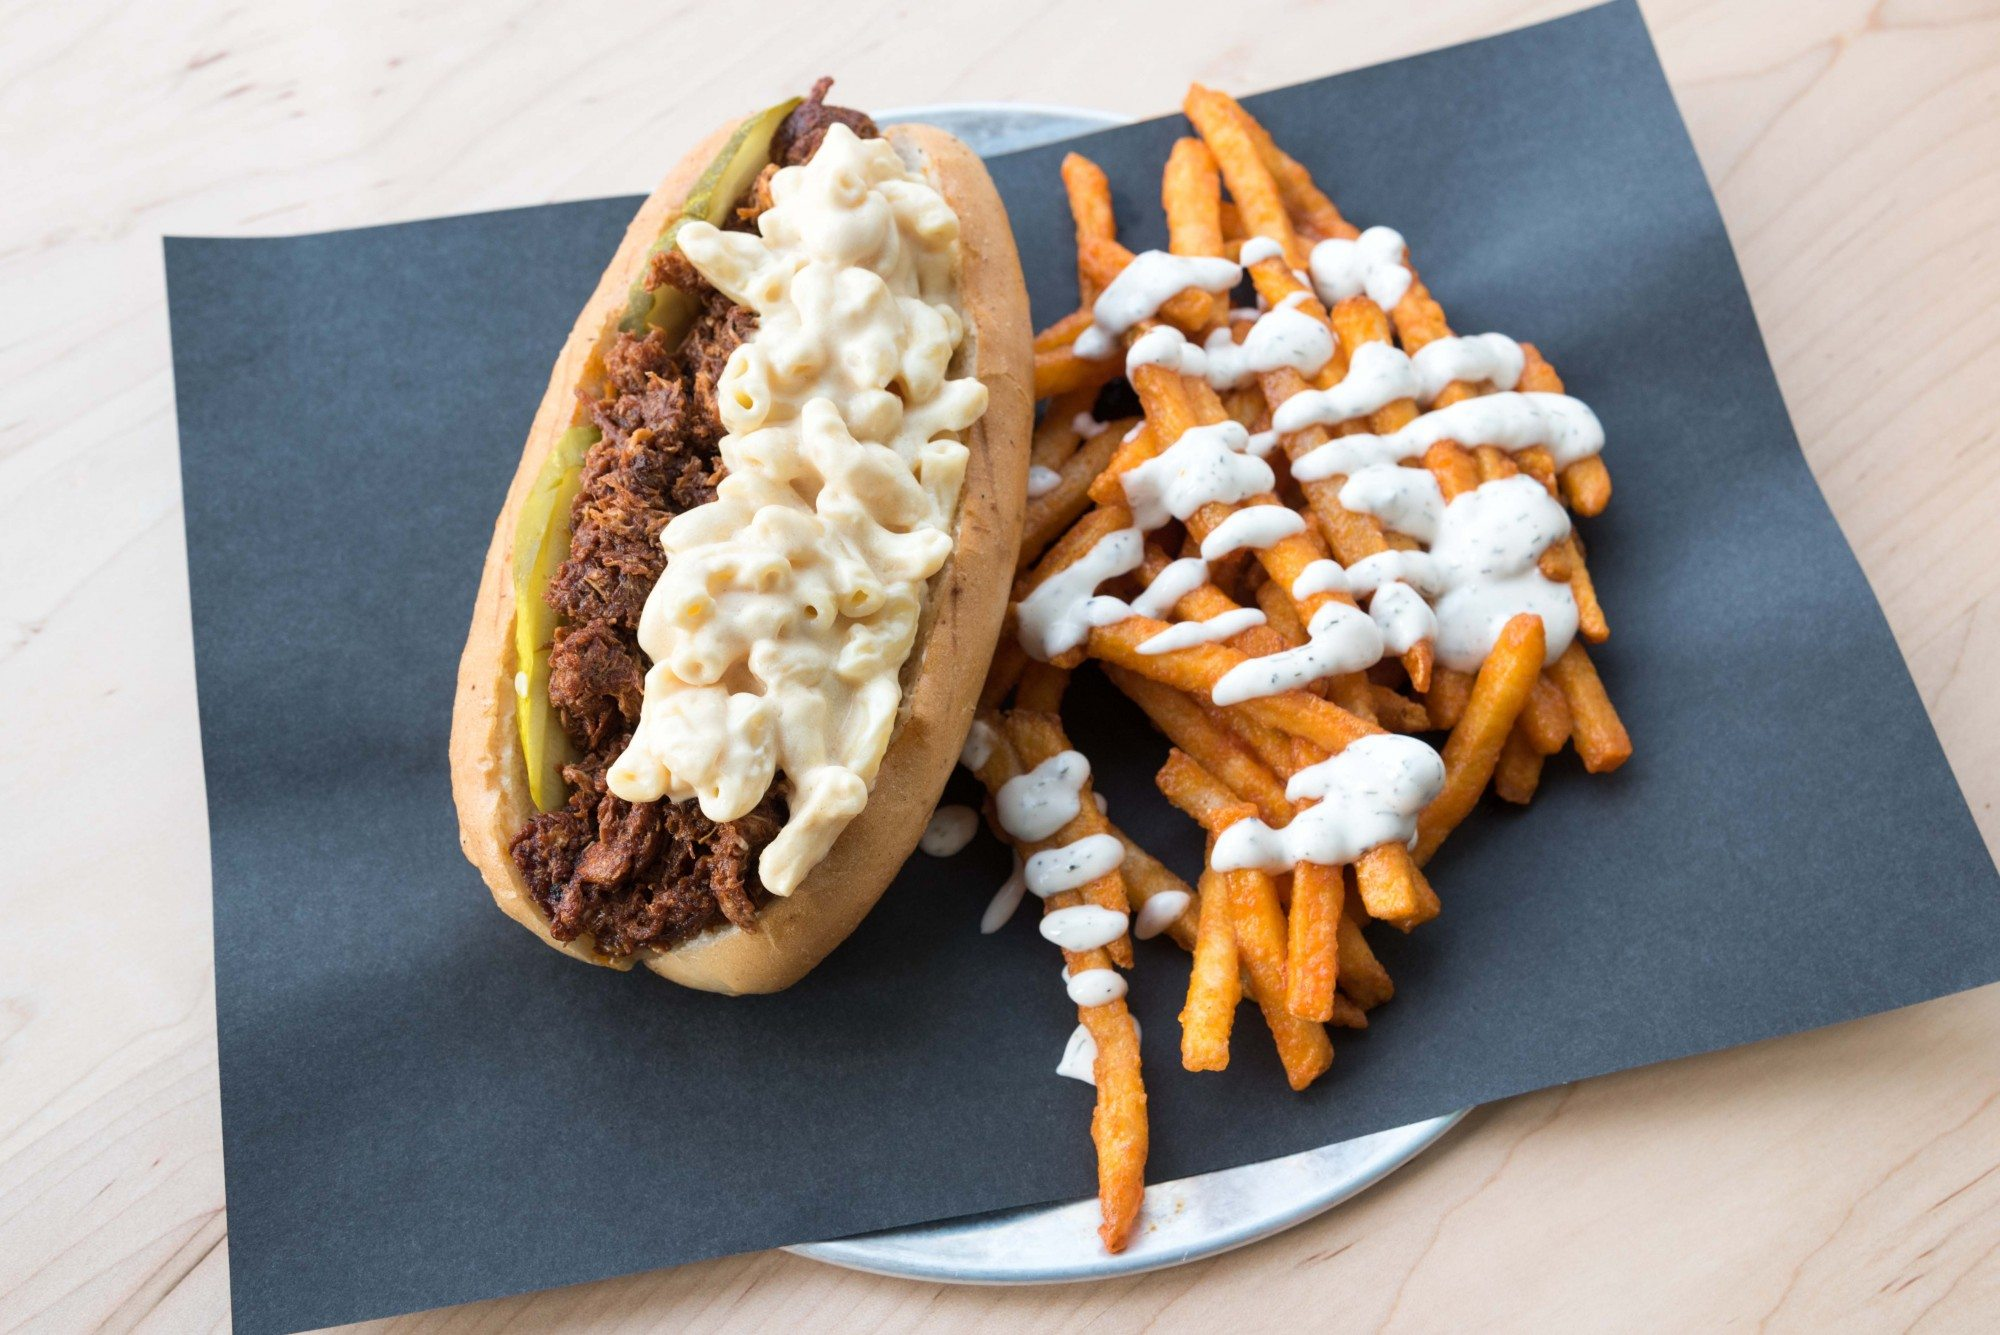 toronto-restaurants-doomies-vegan-parkdale-pulled-pork-hot-dog